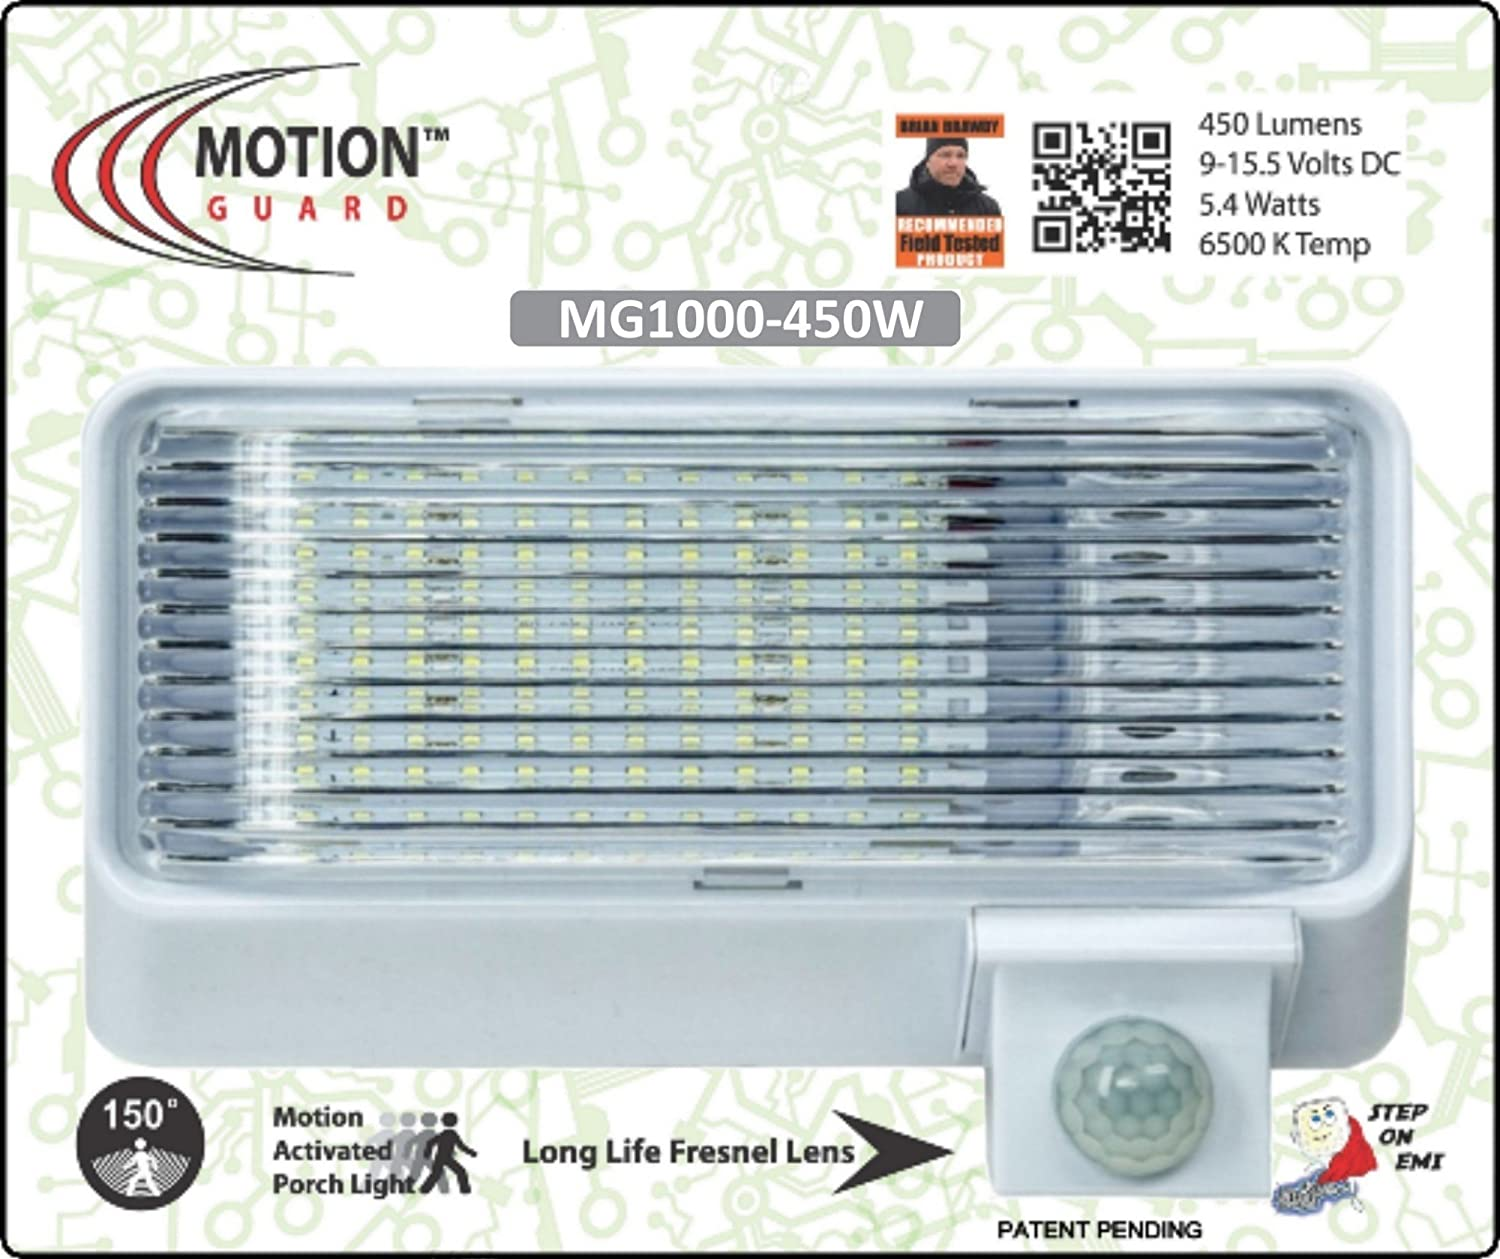 Amazon mg1000 450 12 volt exterior motion rv led porch light amazon mg1000 450 12 volt exterior motion rv led porch light rv security motion porch light white automotive audiocablefo